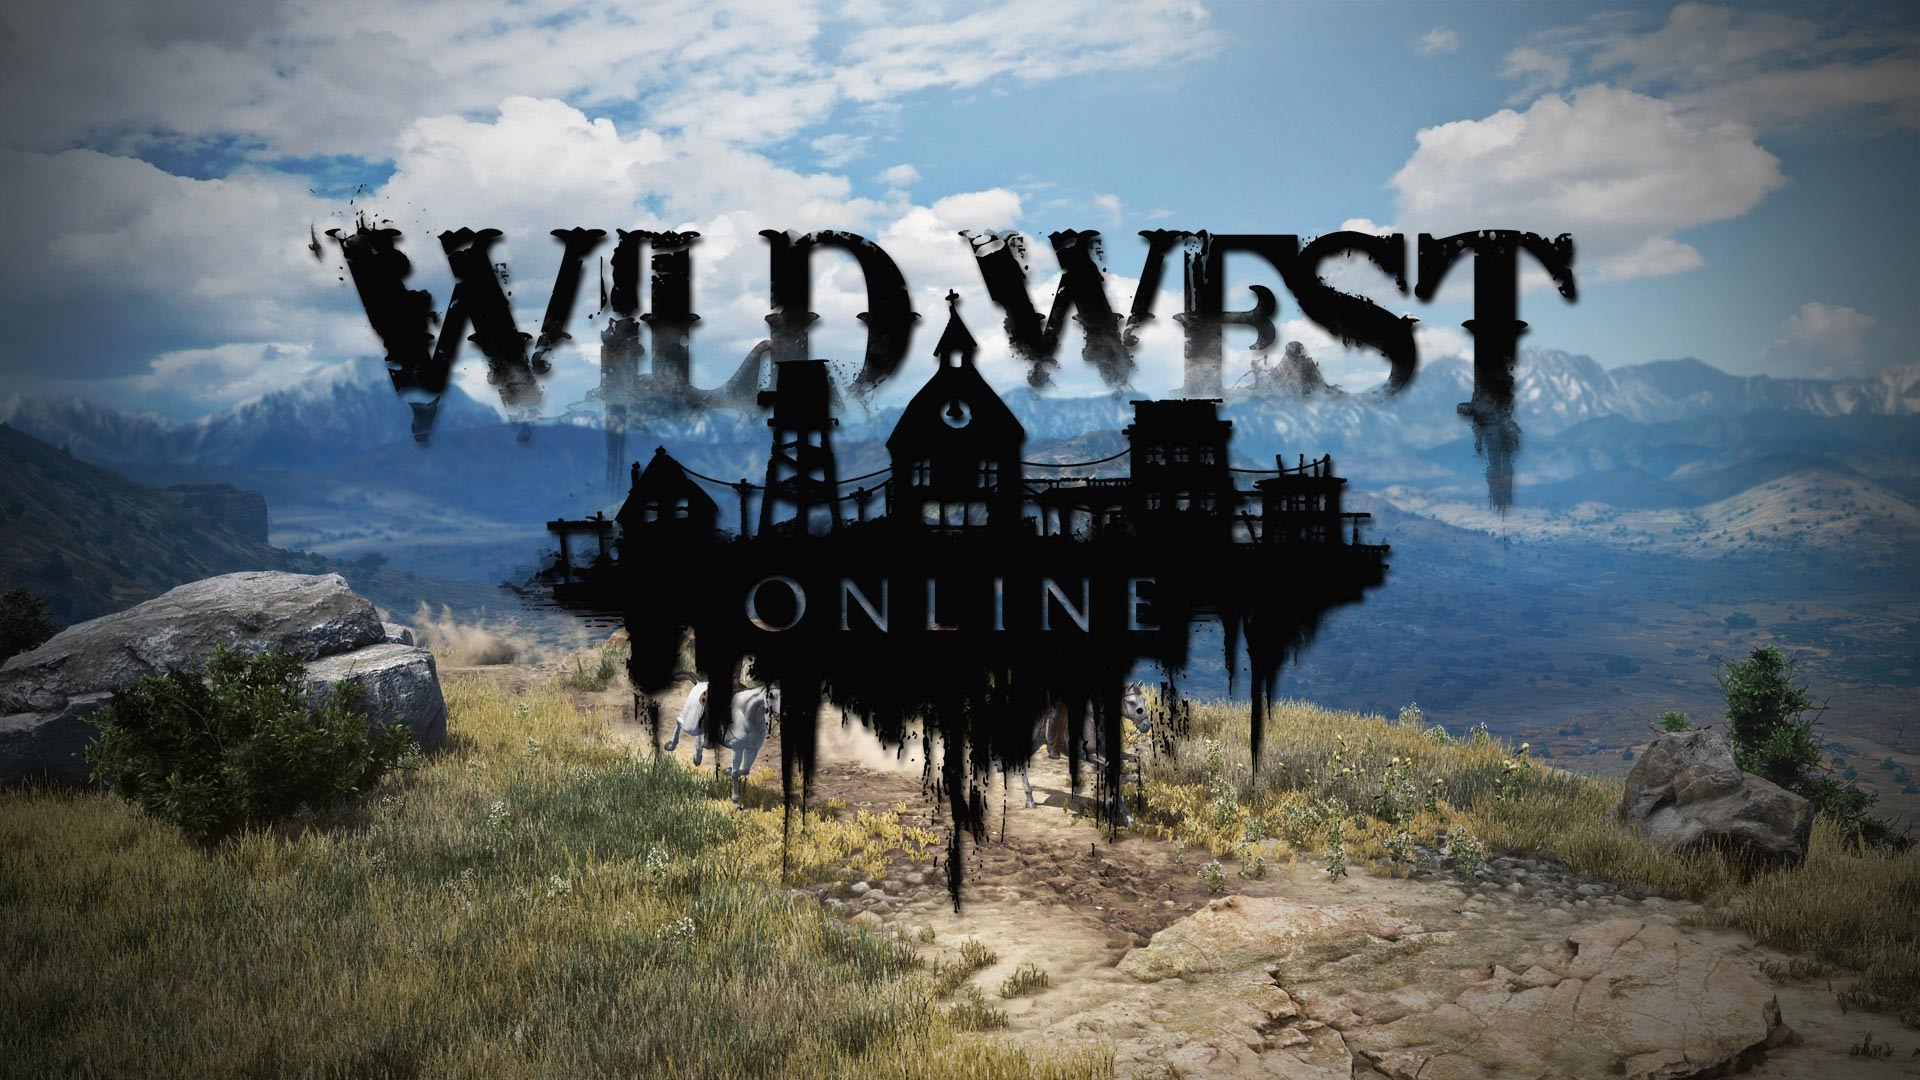 WILD WEST ONLINE 612 GAMES COVER